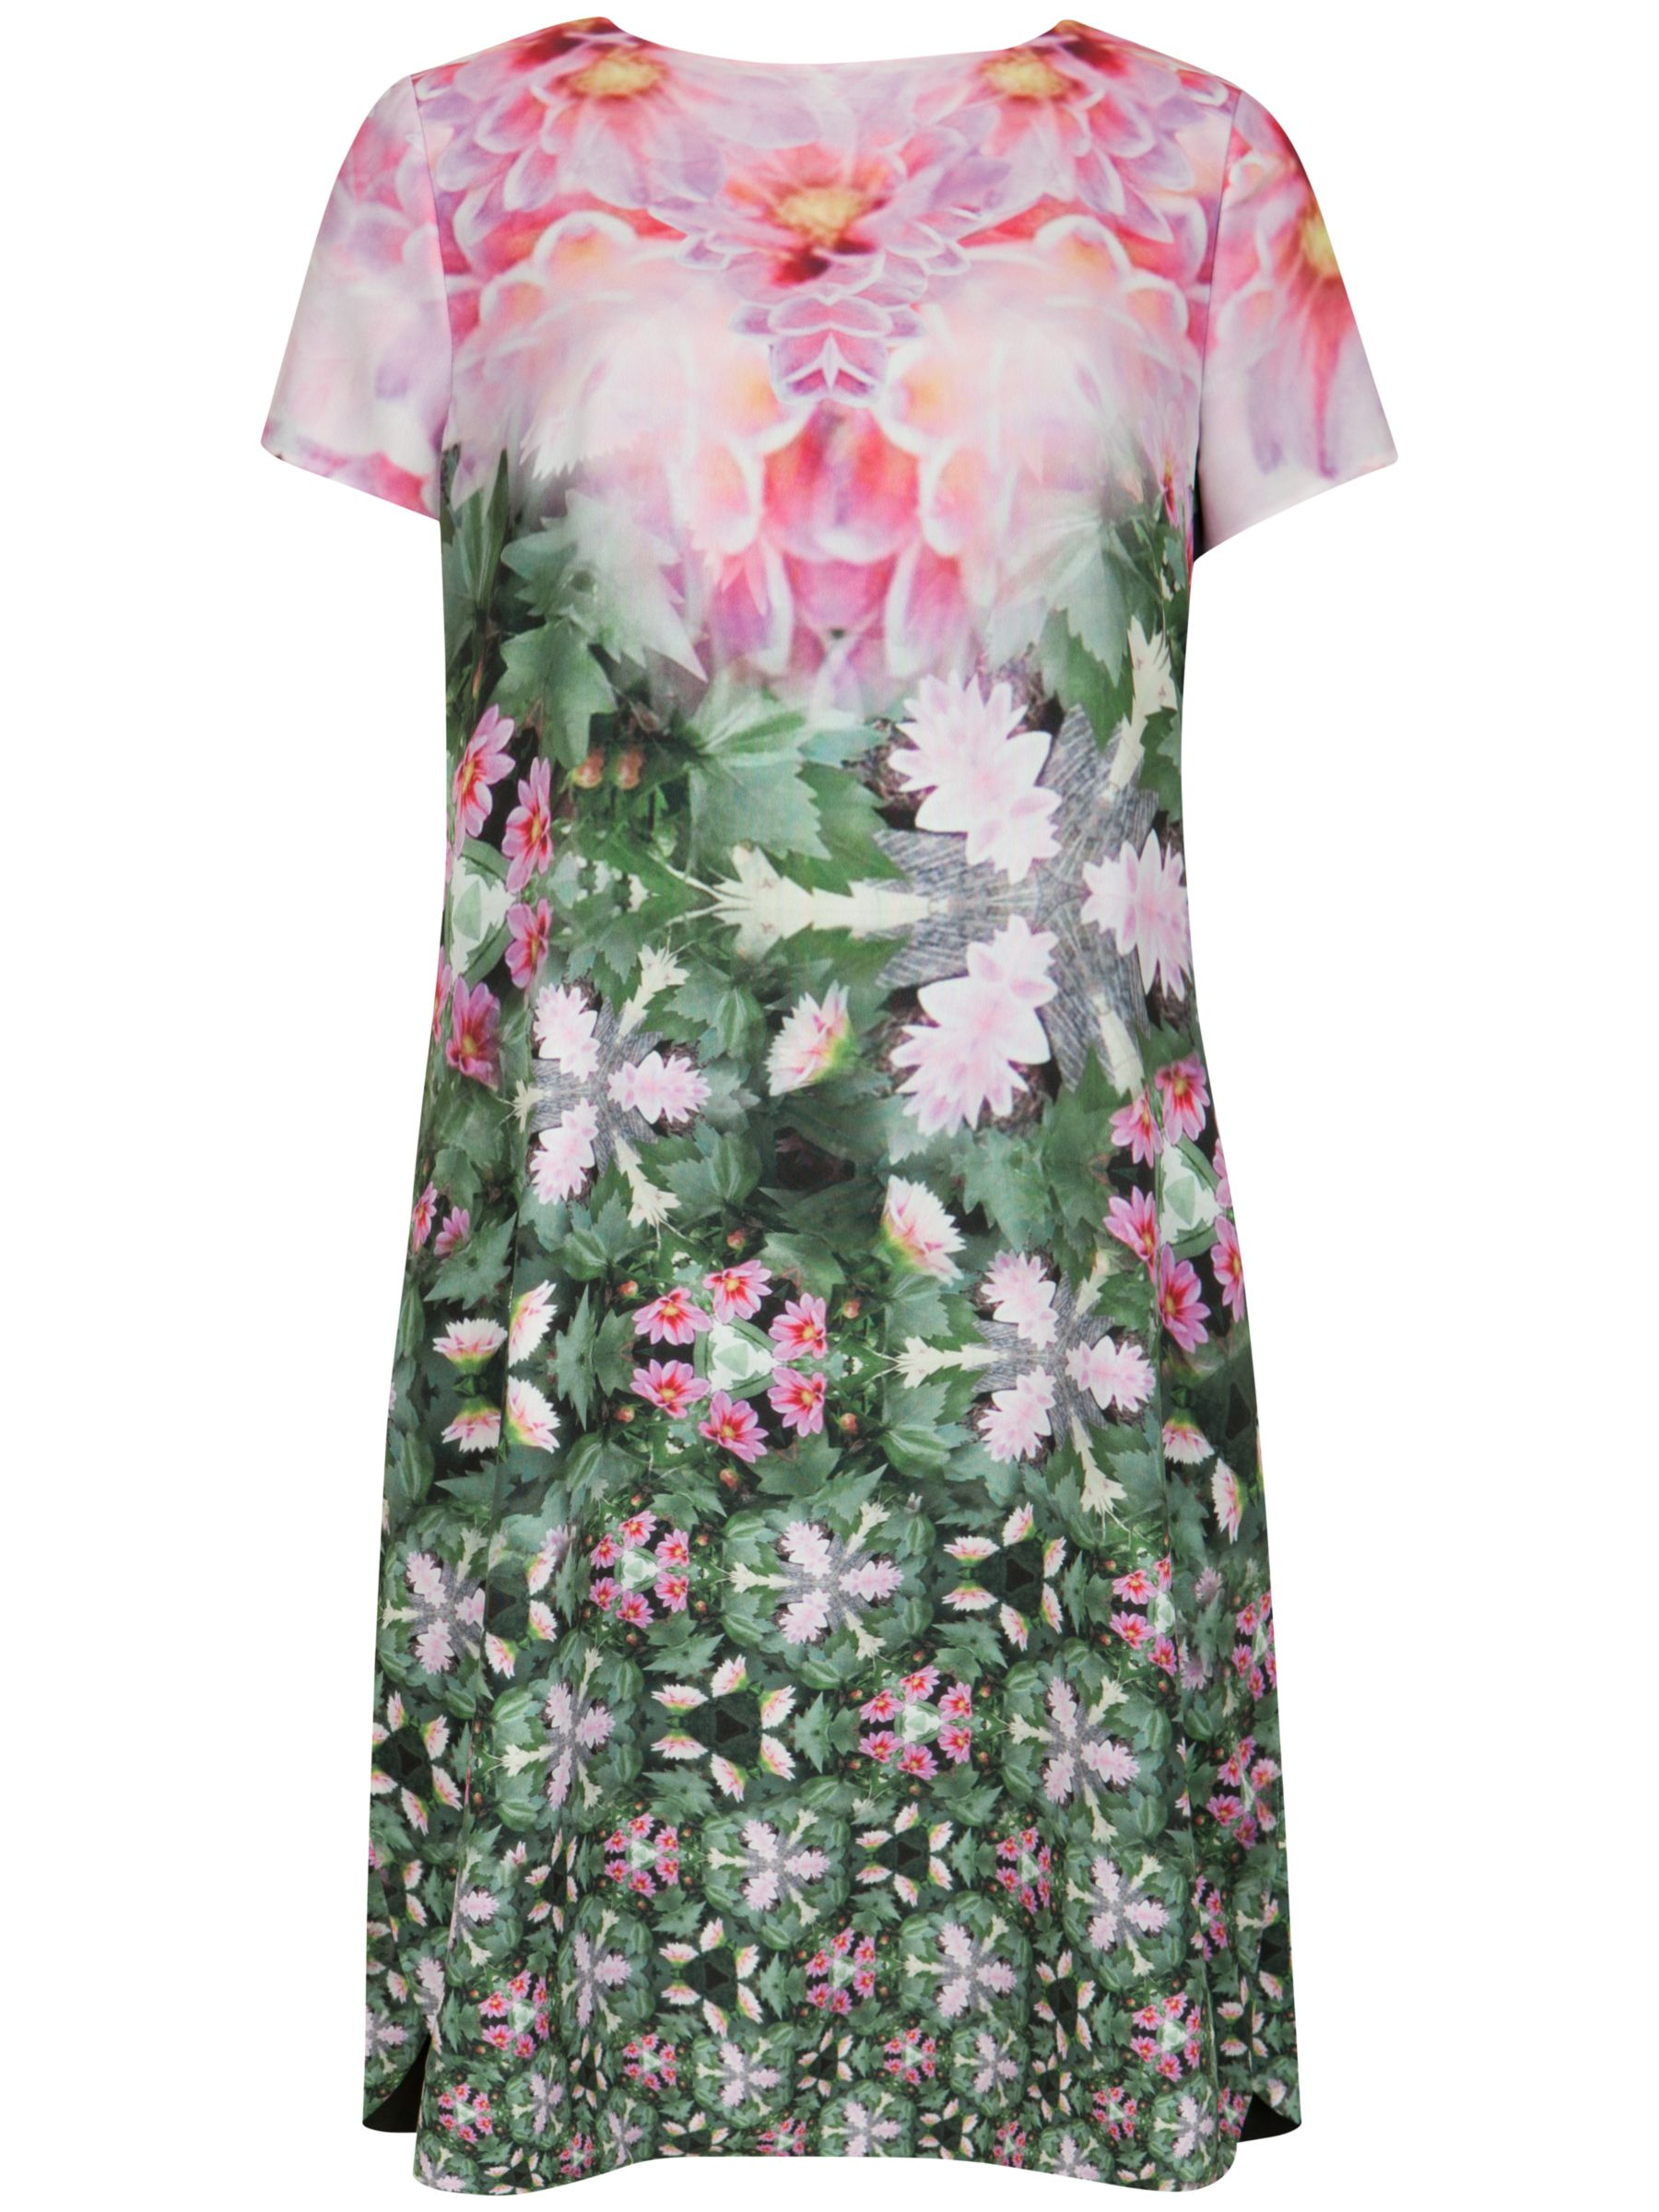 ted baker natural kingdom tunic dress multi, ted, baker, natural, kingdom, tunic, dress, multi, ted baker, 1|2|3|5|4|0, women, womens dresses, special offers, womenswear offers, 30% off selected ted baker, gifts, wedding, wedding clothing, female guests, fashion magazine, womenswear, men, brands l-z, 1865657